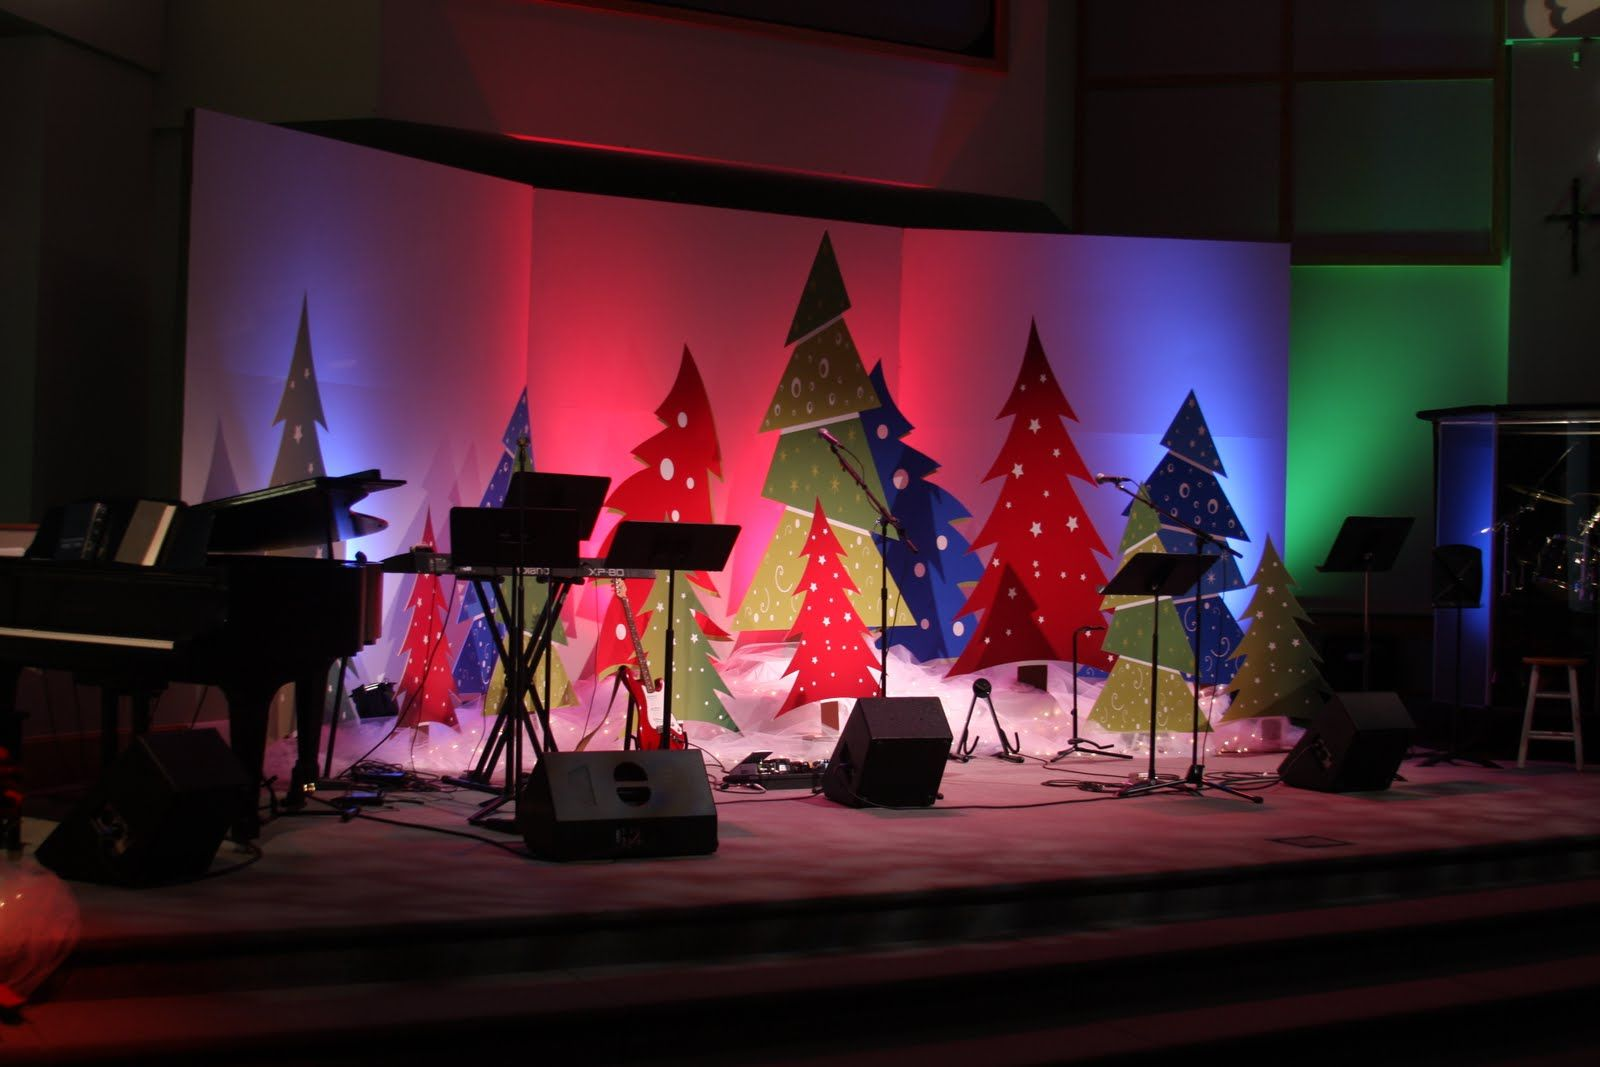 Christmas Stage Set Ideas Posted By First Church Zeeland 1 Comment